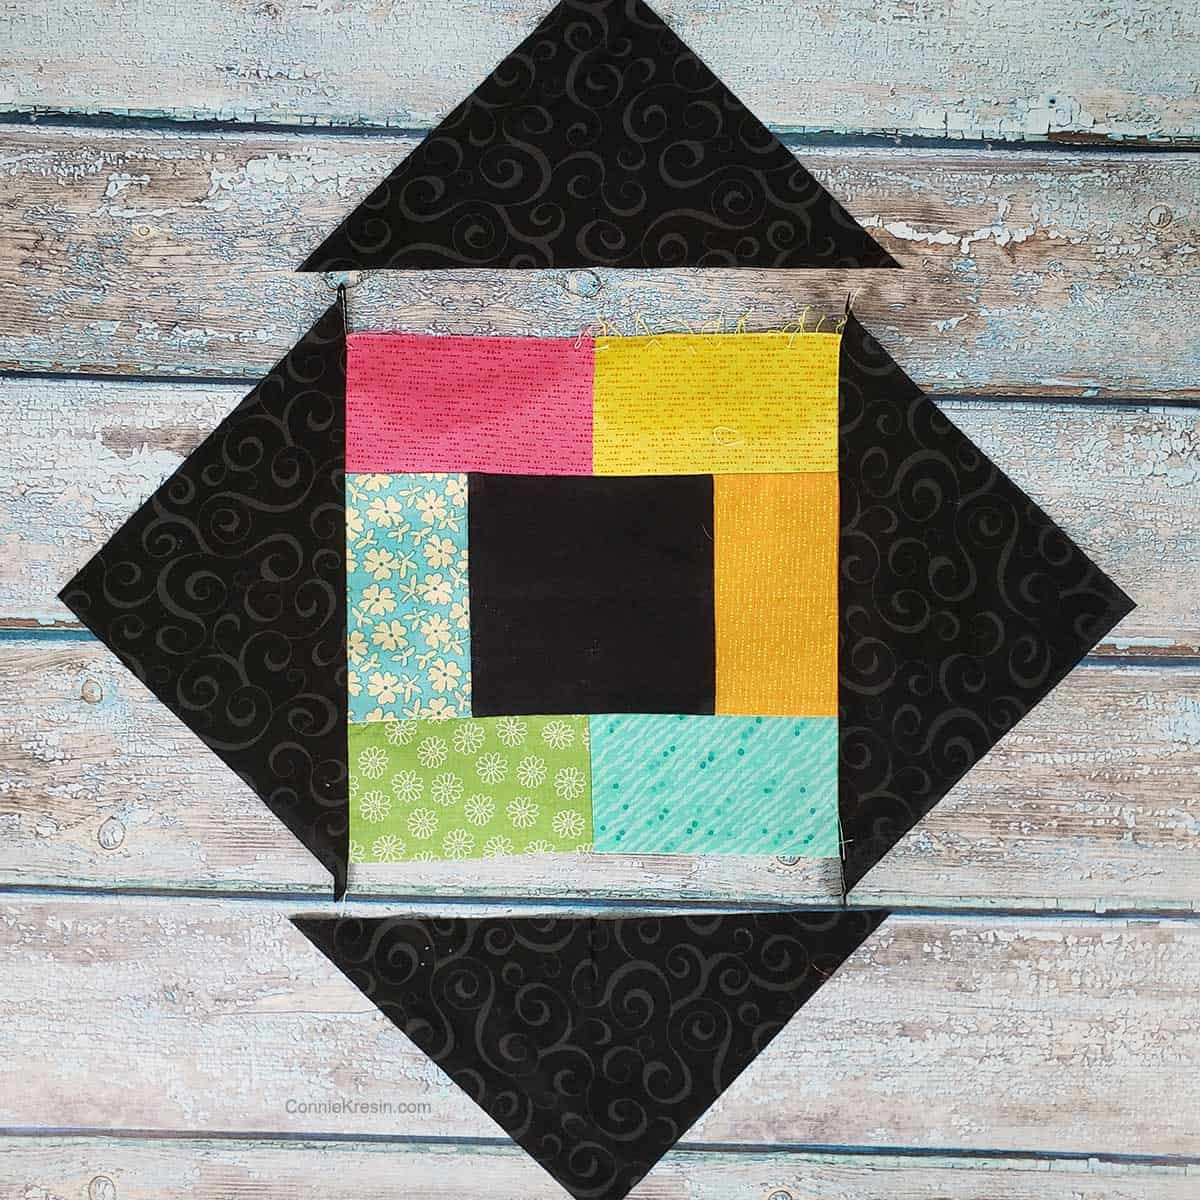 Sewing the corner triangles to the quilt block